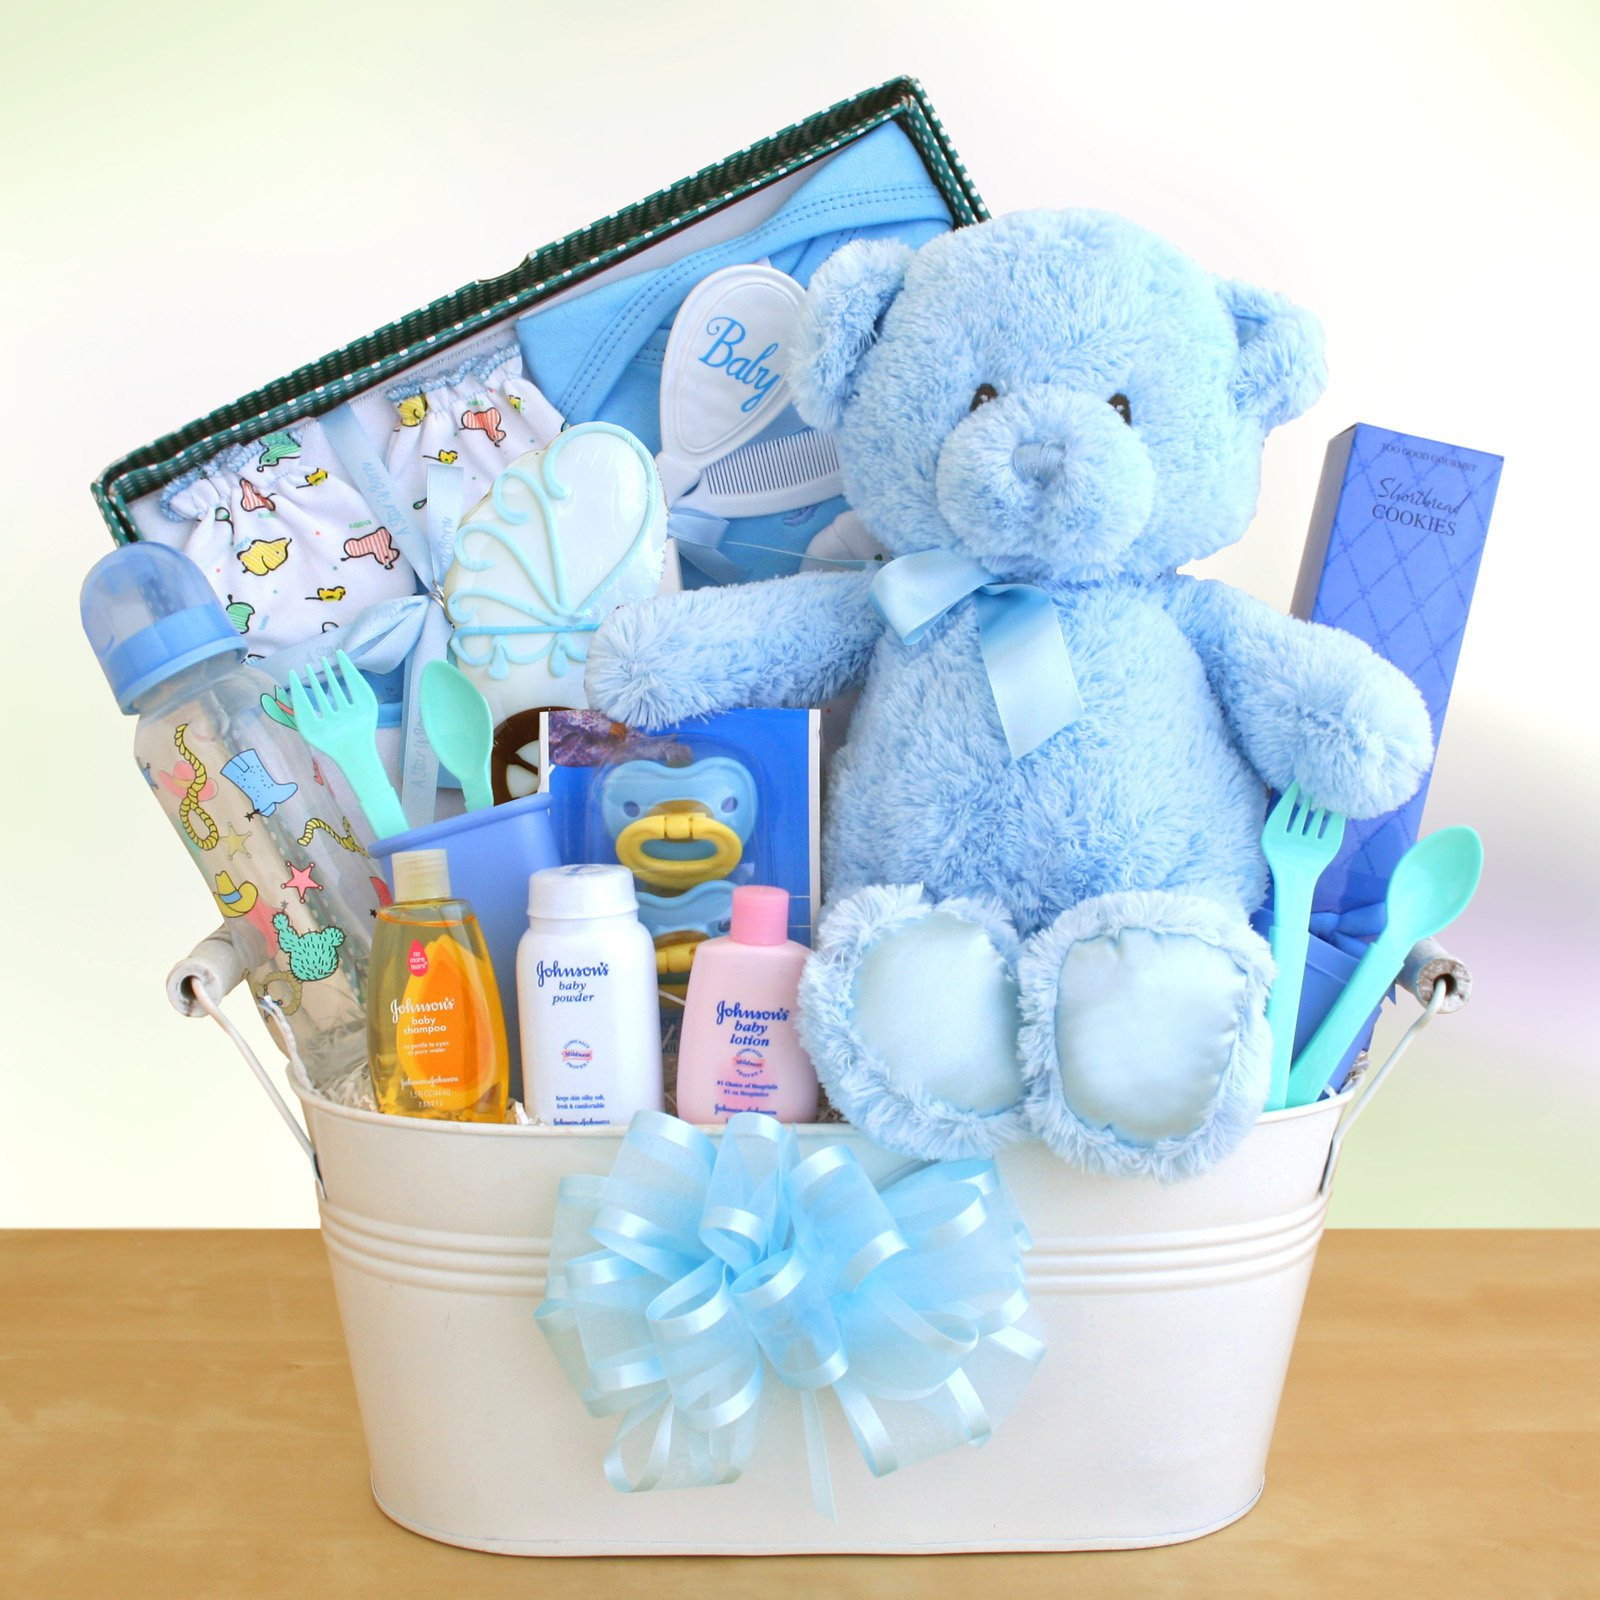 Best ideas about Gift Ideas For New Baby . Save or Pin New Arrival Baby Boy Gift Basket Gift Baskets by Now.